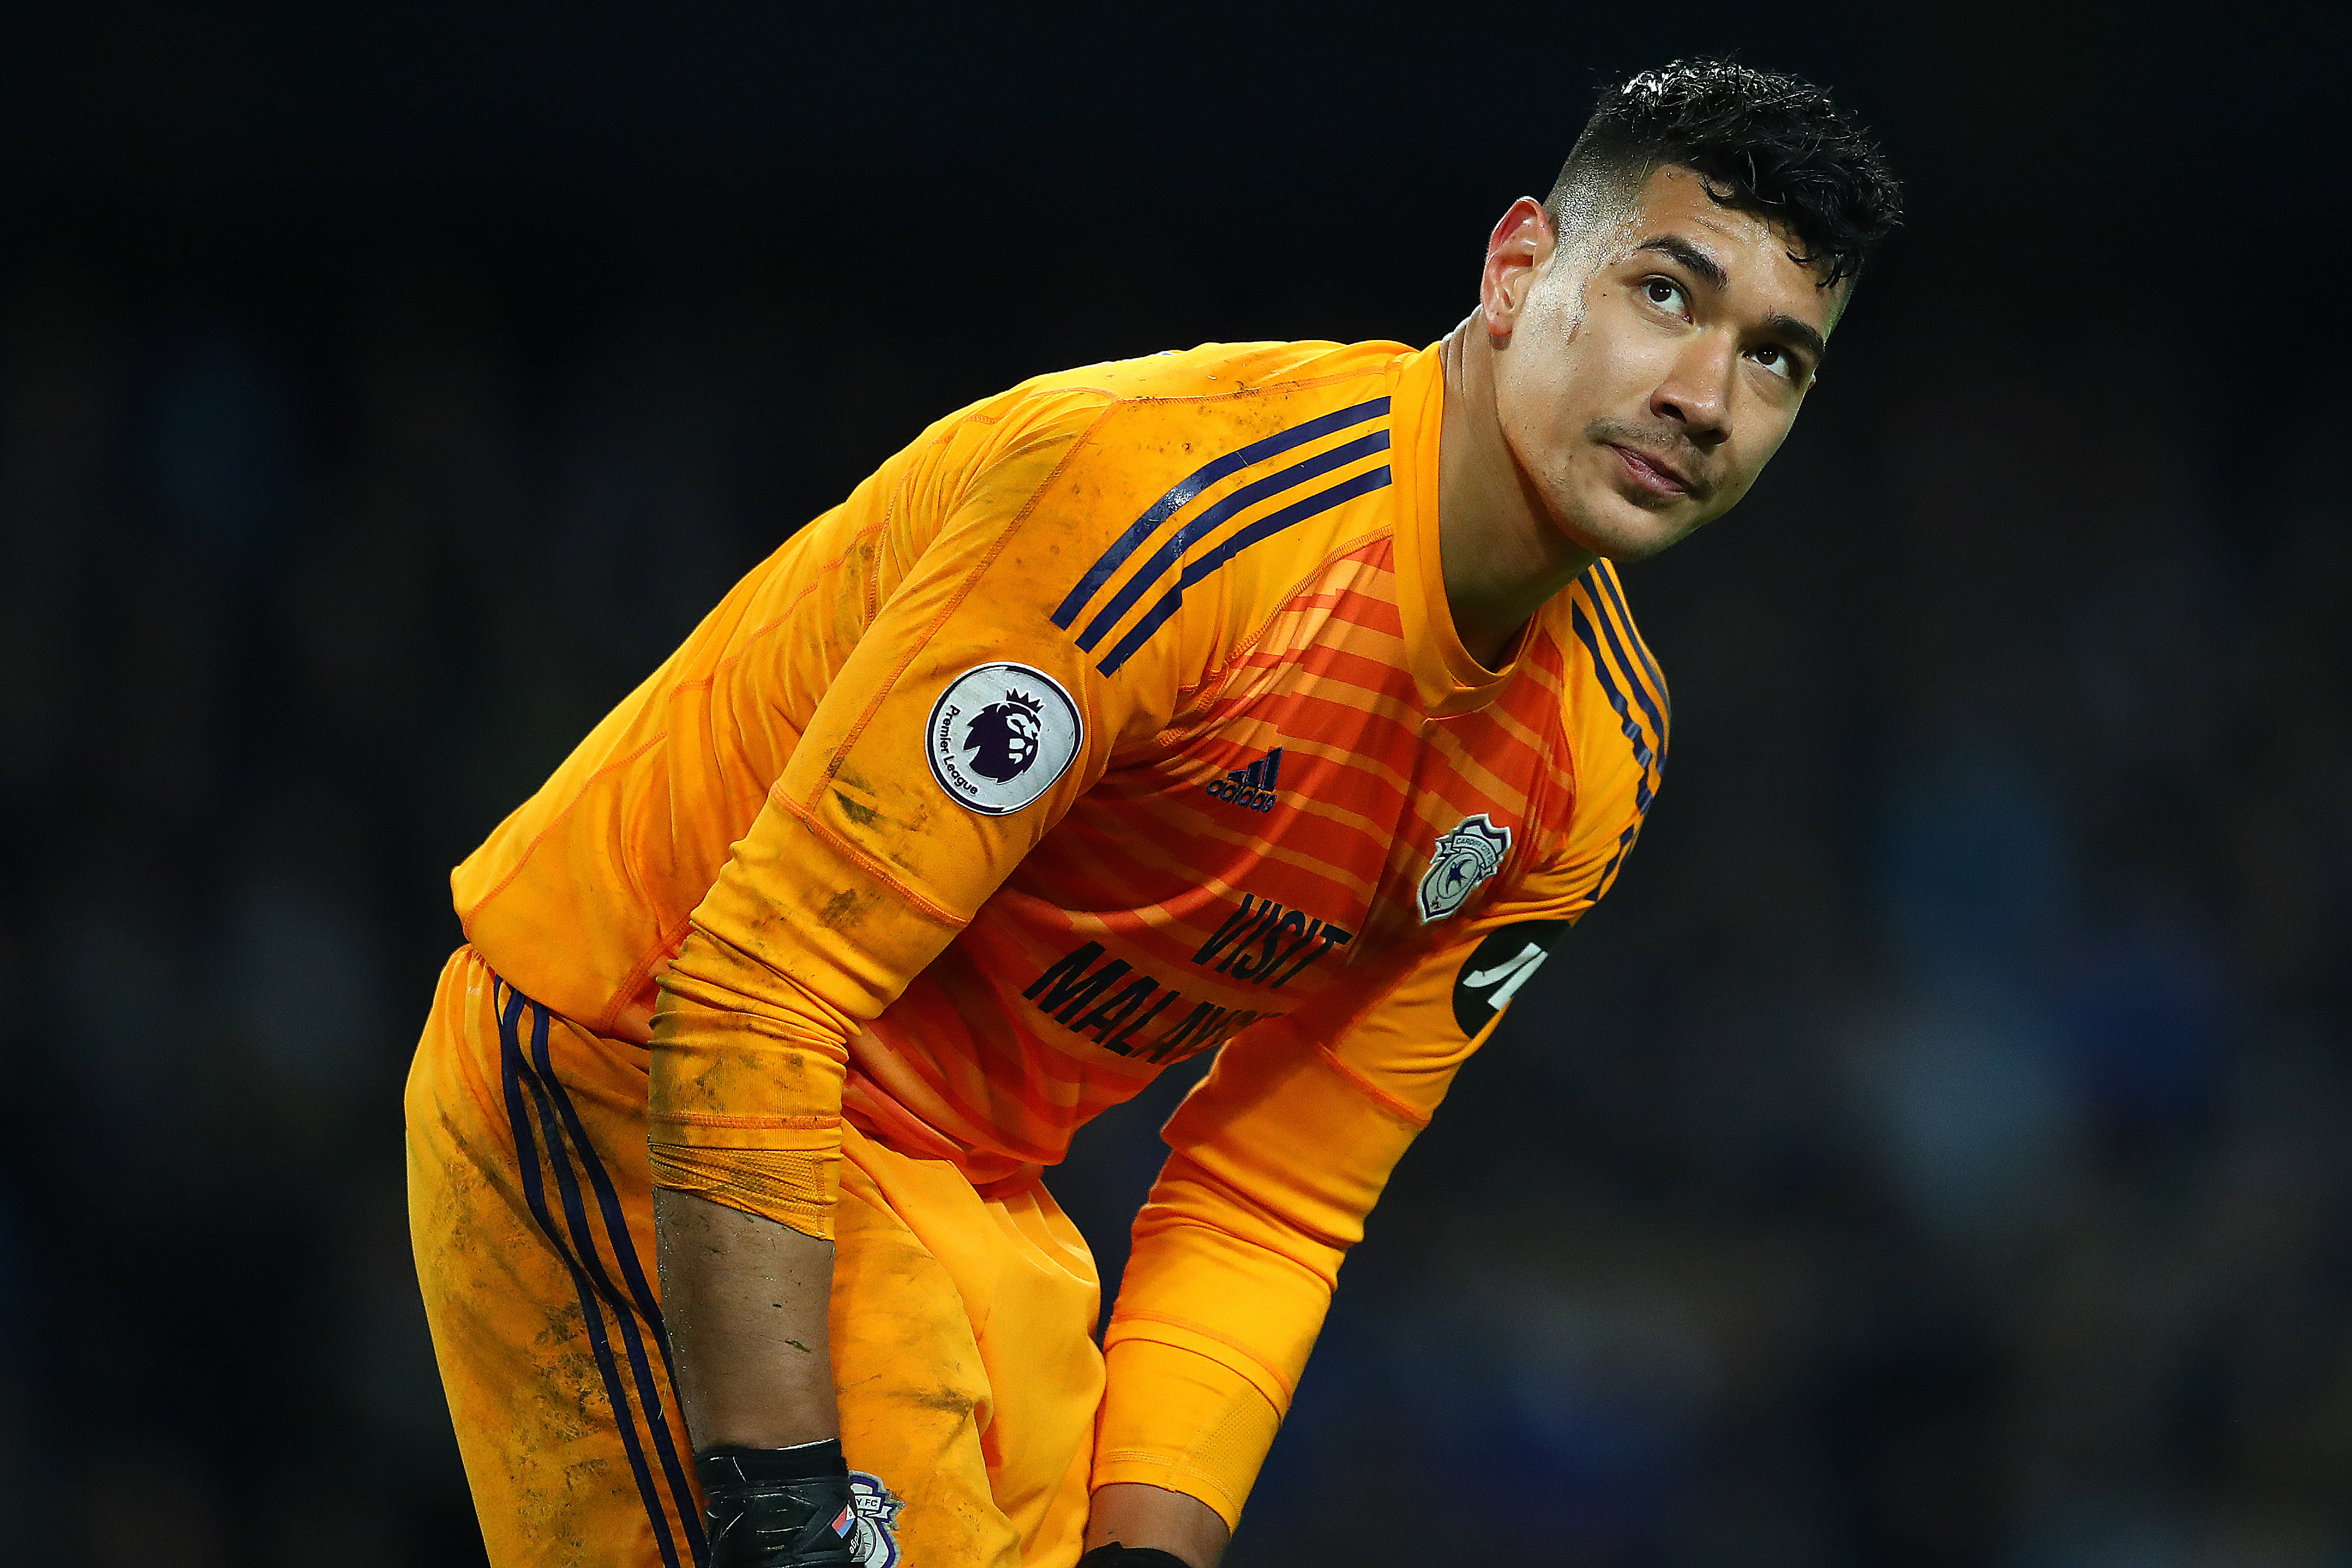 Neil Etheridge is attracting interest from many clubs after impressing at Cardiff. (Photo courtesy: AFP/Getty)